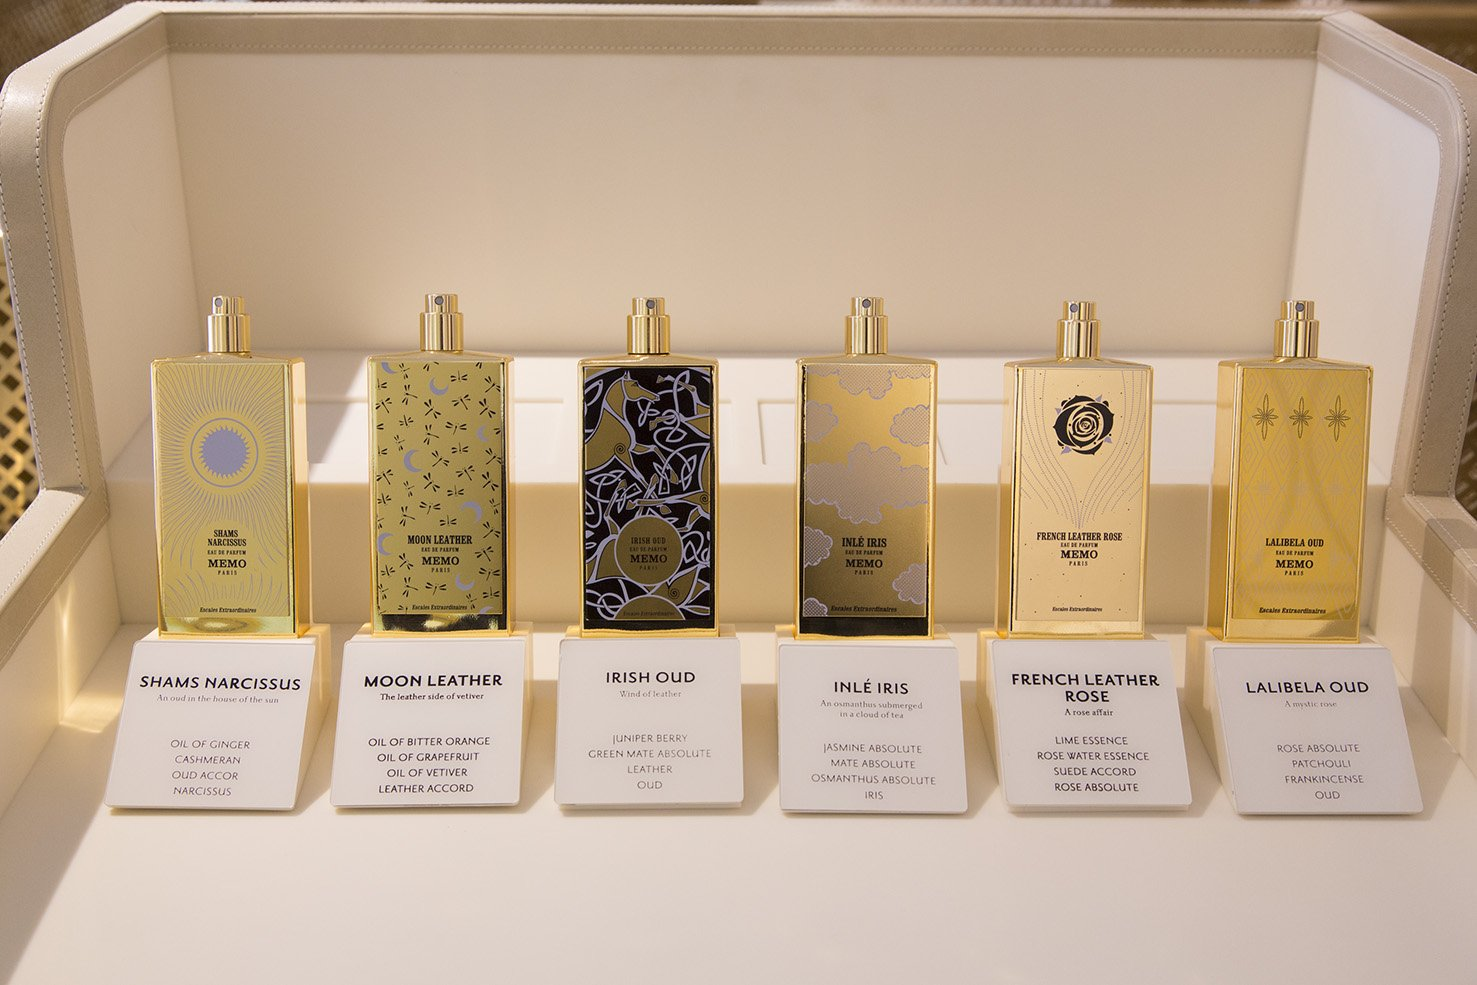 Bespoke Perfumes in Paris Memo